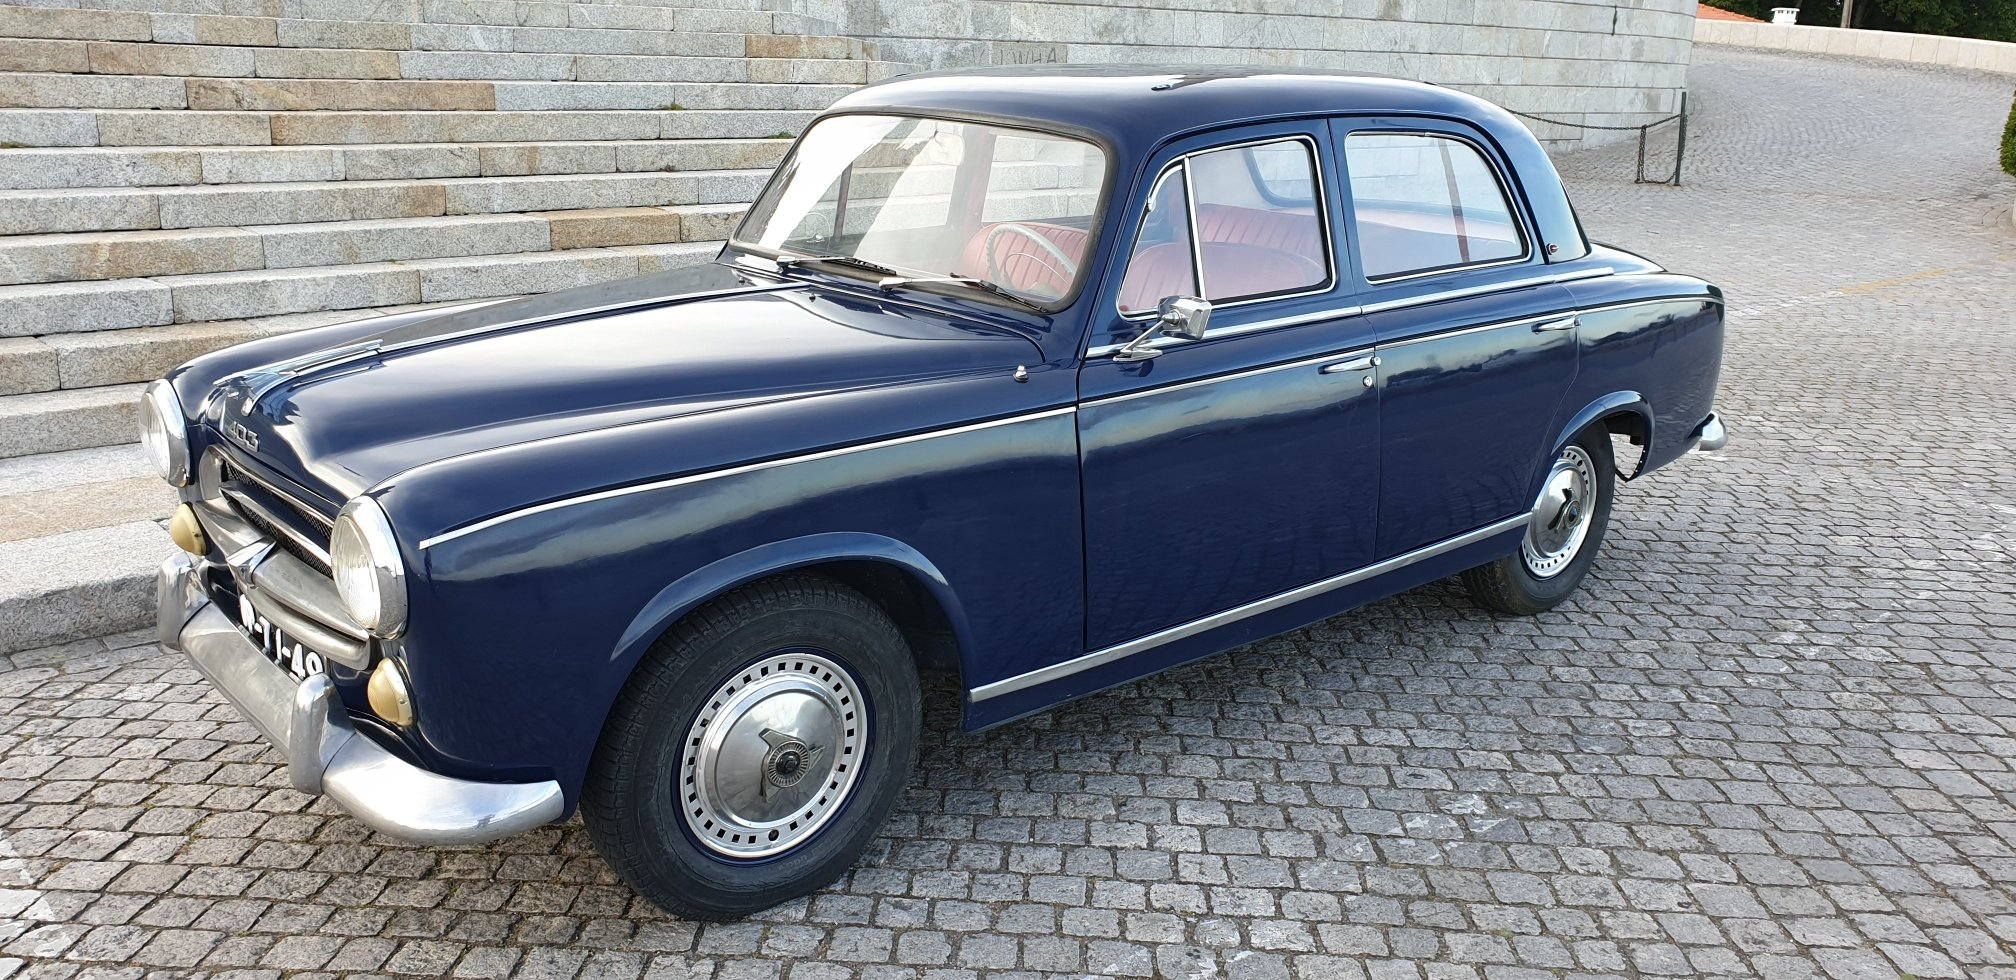 1960 Peugeot 403 Berline Grand Luxe for Sale For Sale (picture 1 of 6)